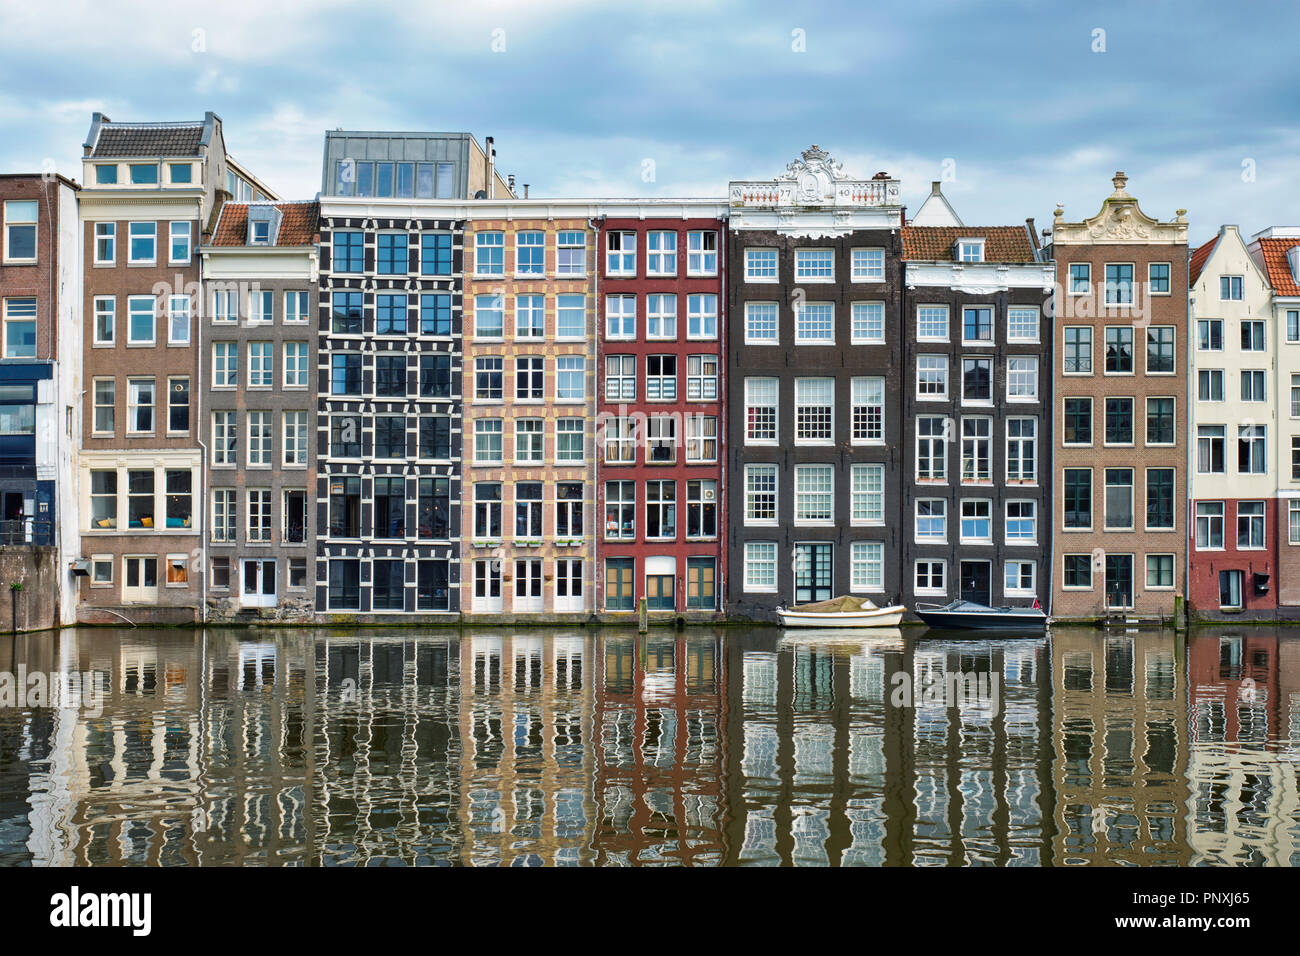 Amsterdam canal Damrak with houses, Netherlands - Stock Image